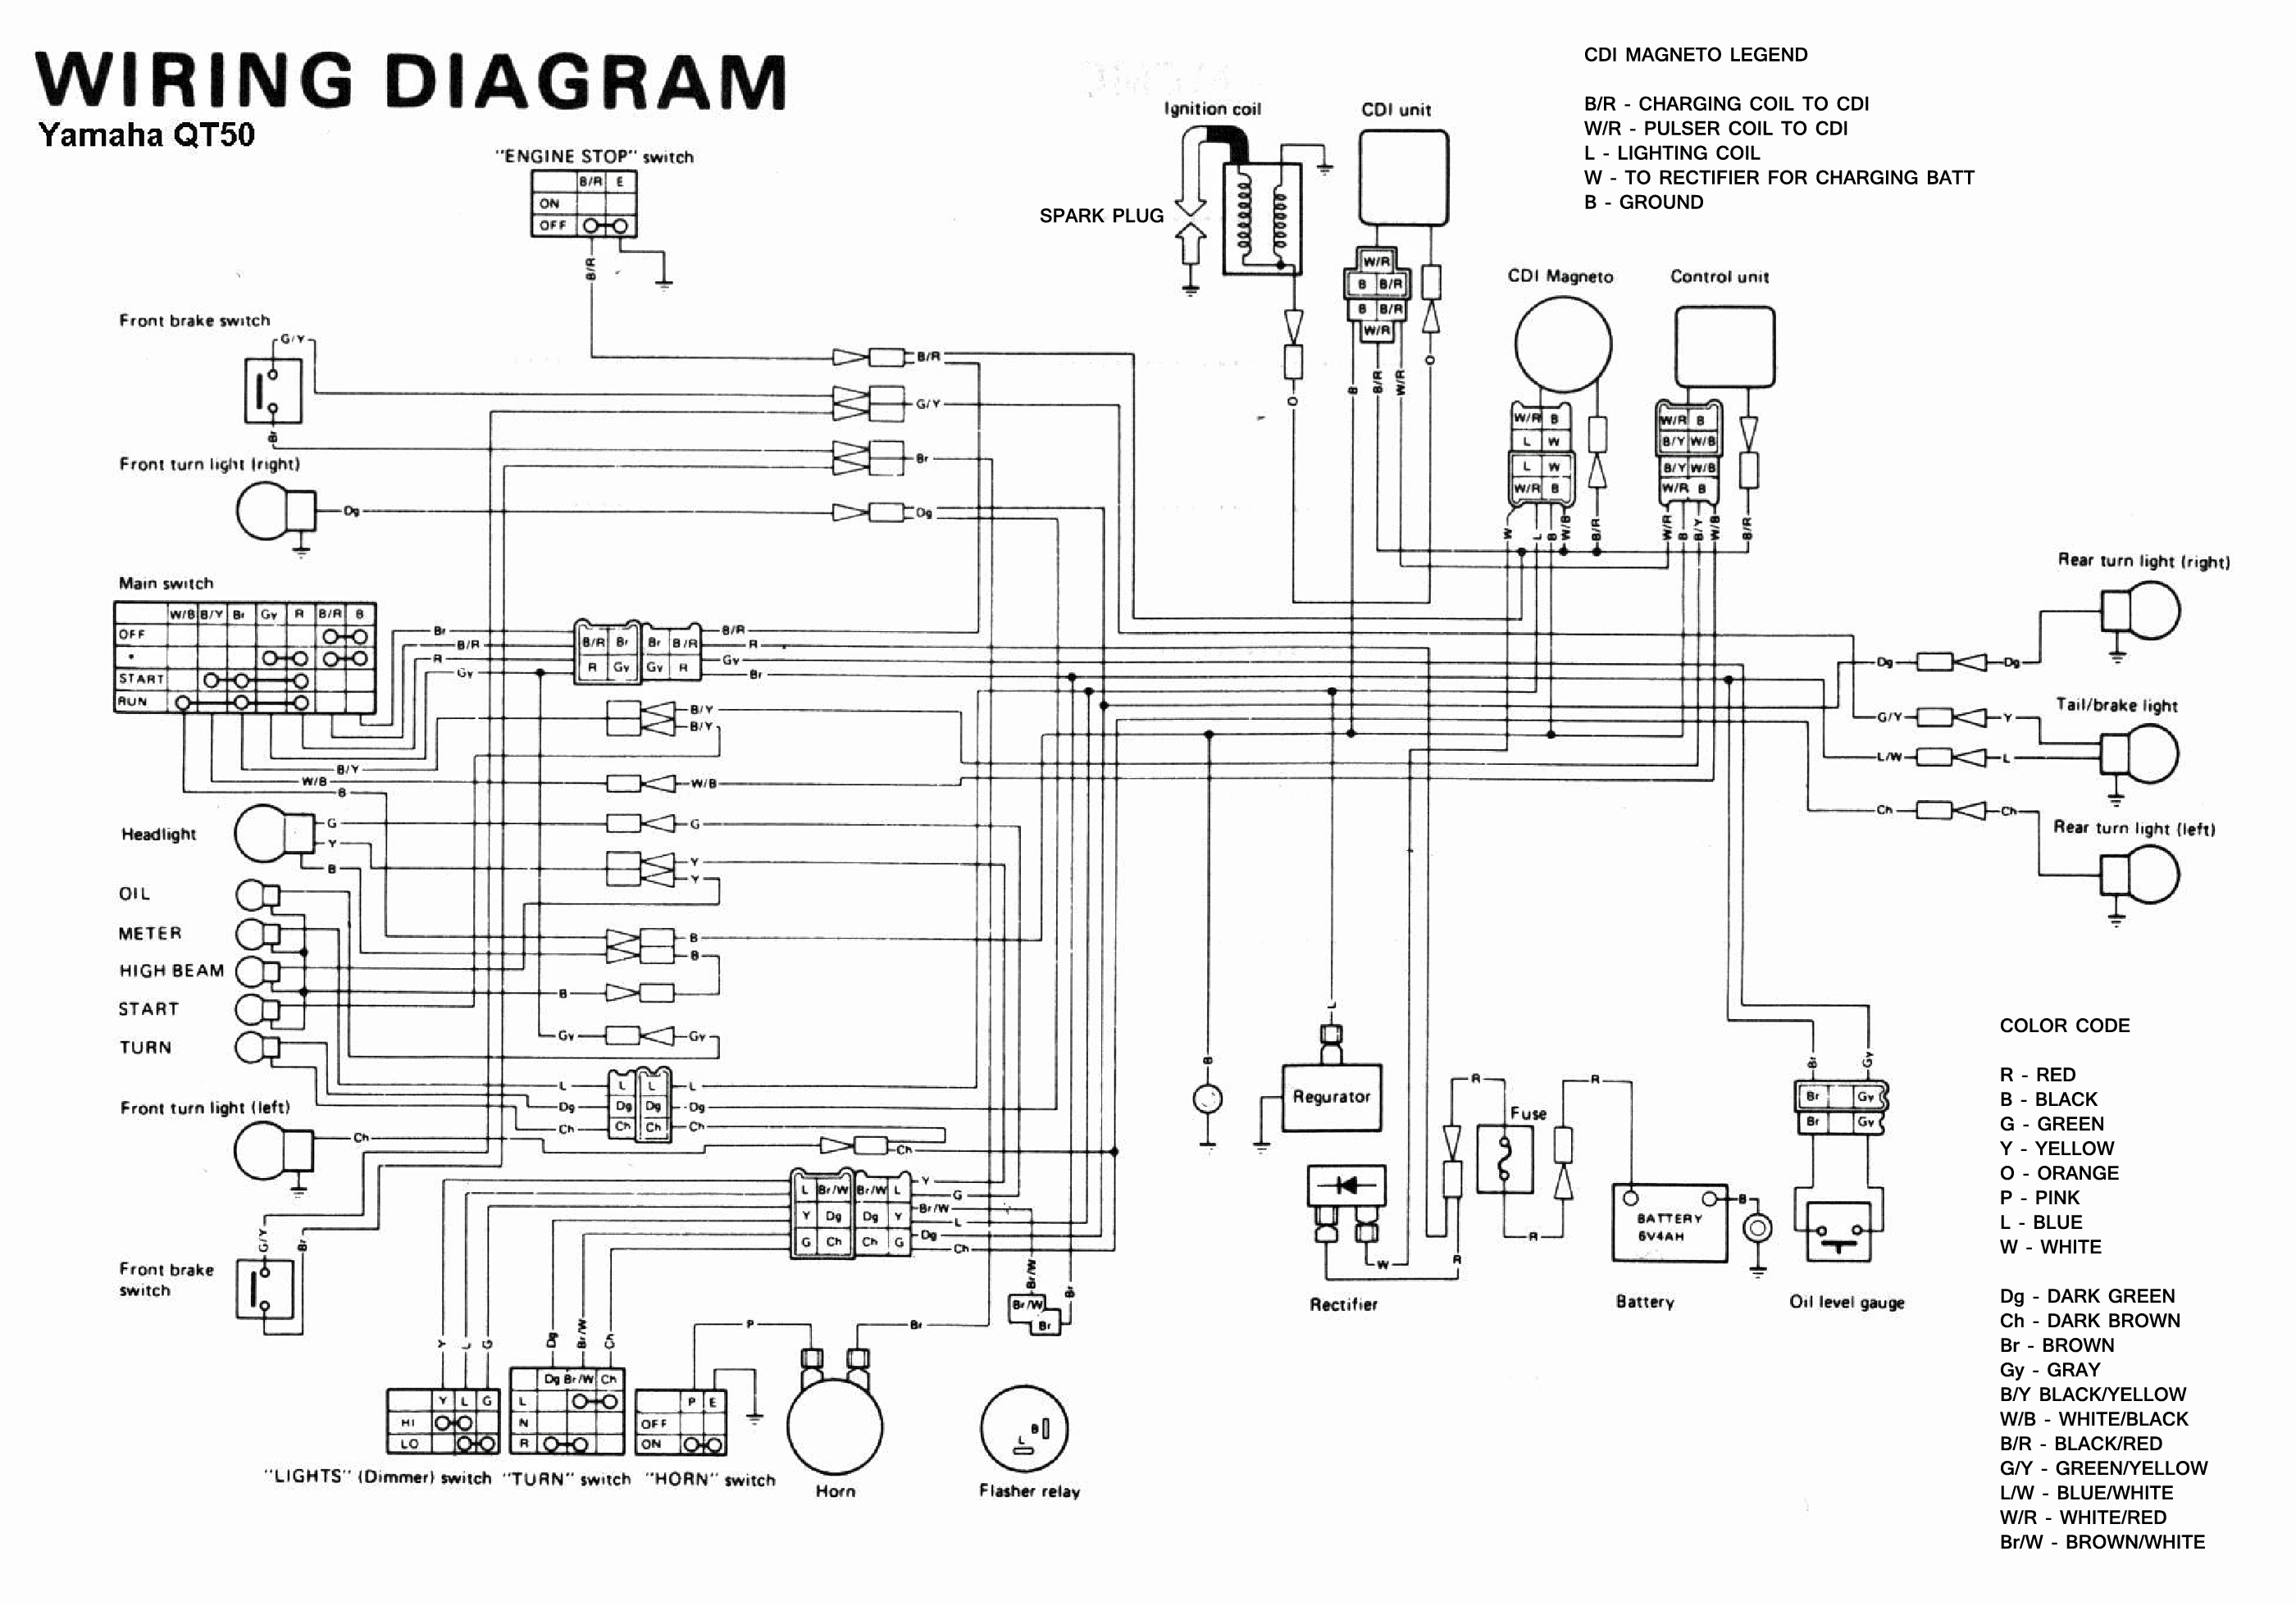 Yamaha Maxim Wiring Diagram Detailed Schematics Schematic 1980 Sr250 1998 R1